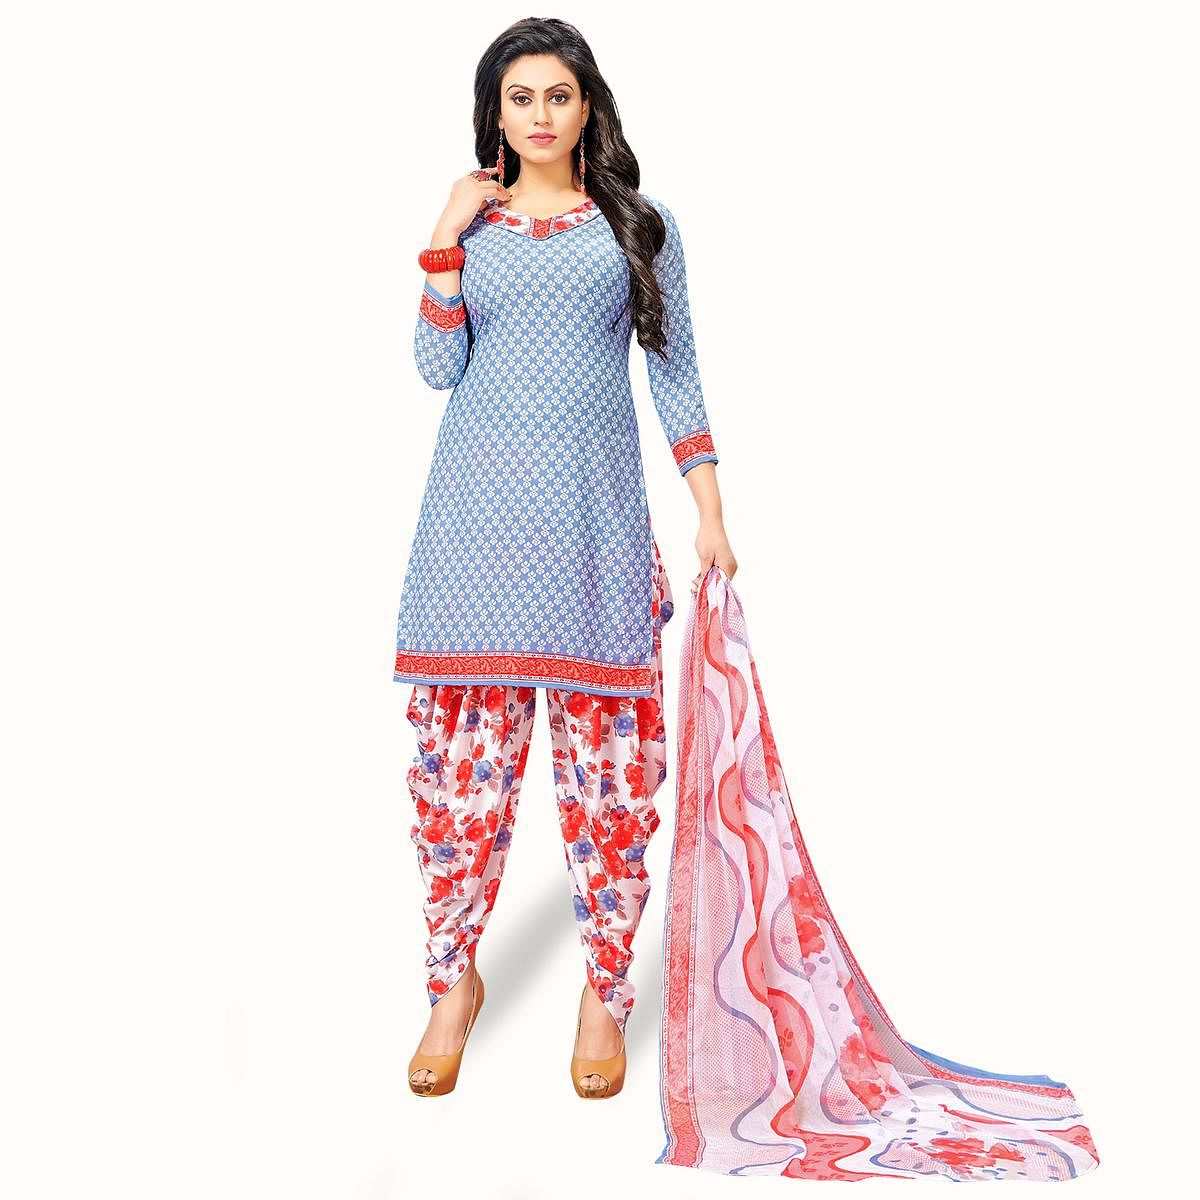 Flattering Slate Blue Colored Casual Wear Printed Crepe Patiala Suit